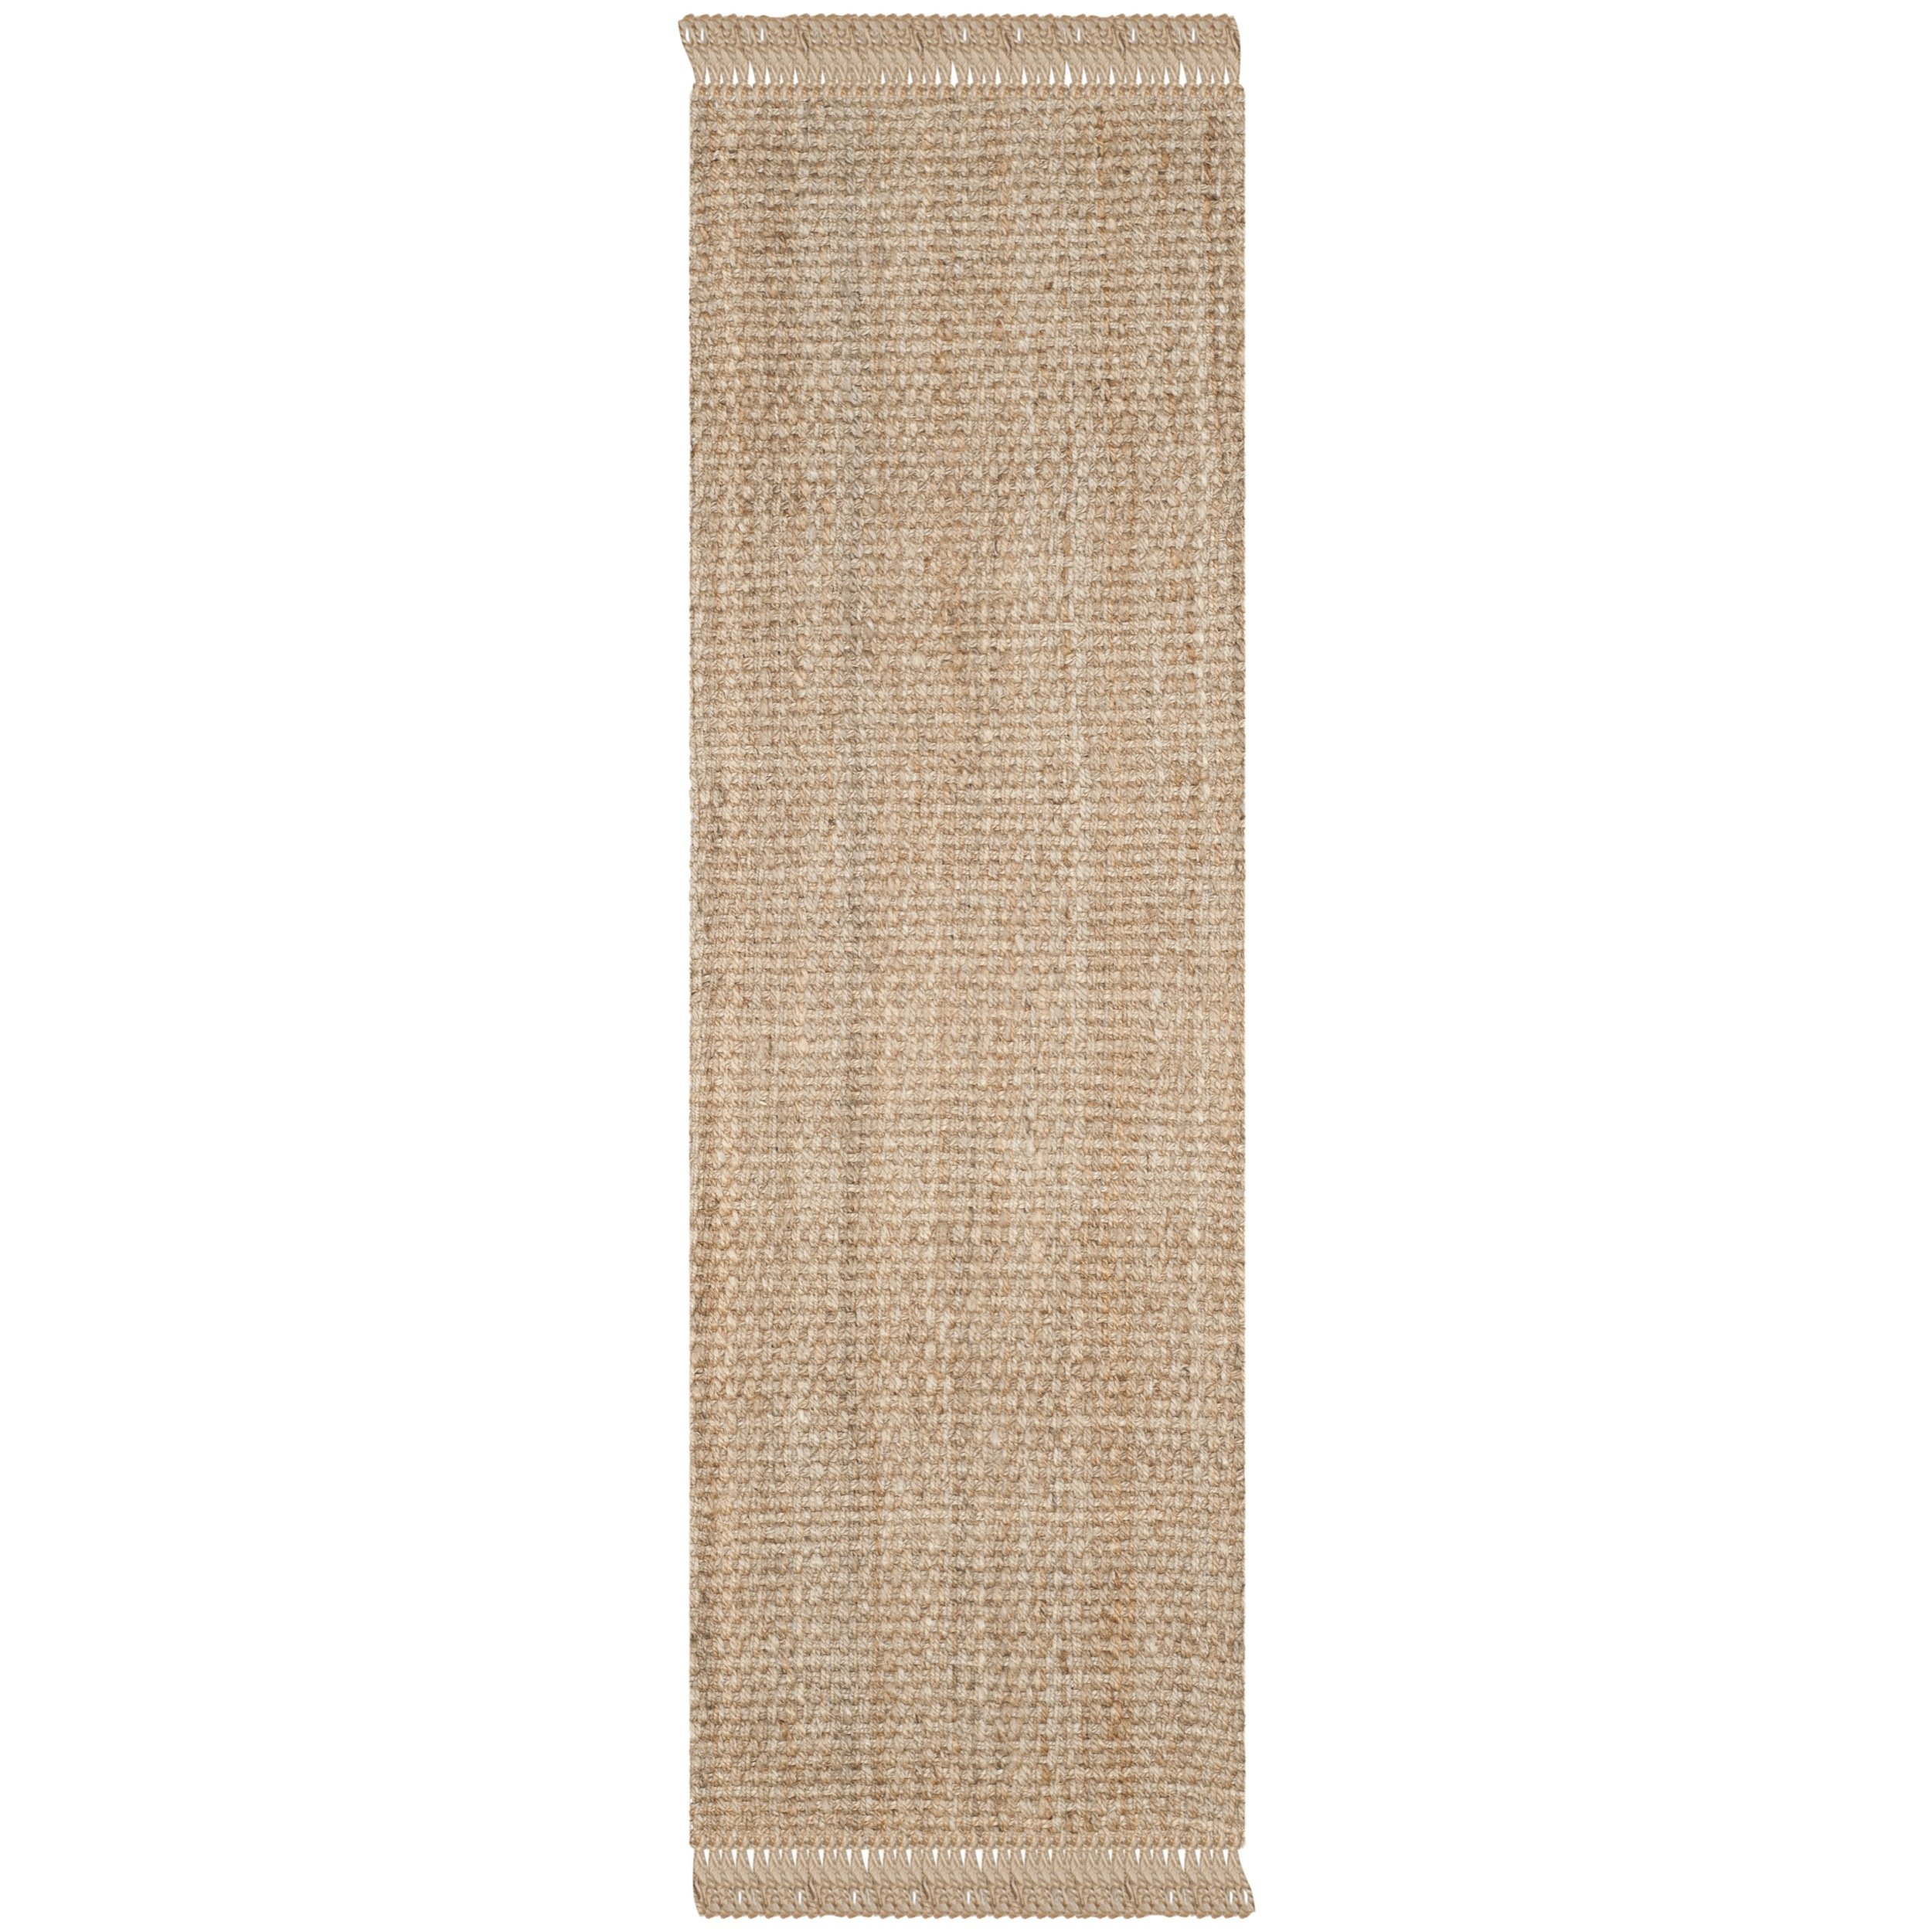 Safavieh Natural Fiber Collection NF467A Hand Woven Natural Jute Runner (2'6'' x 6')